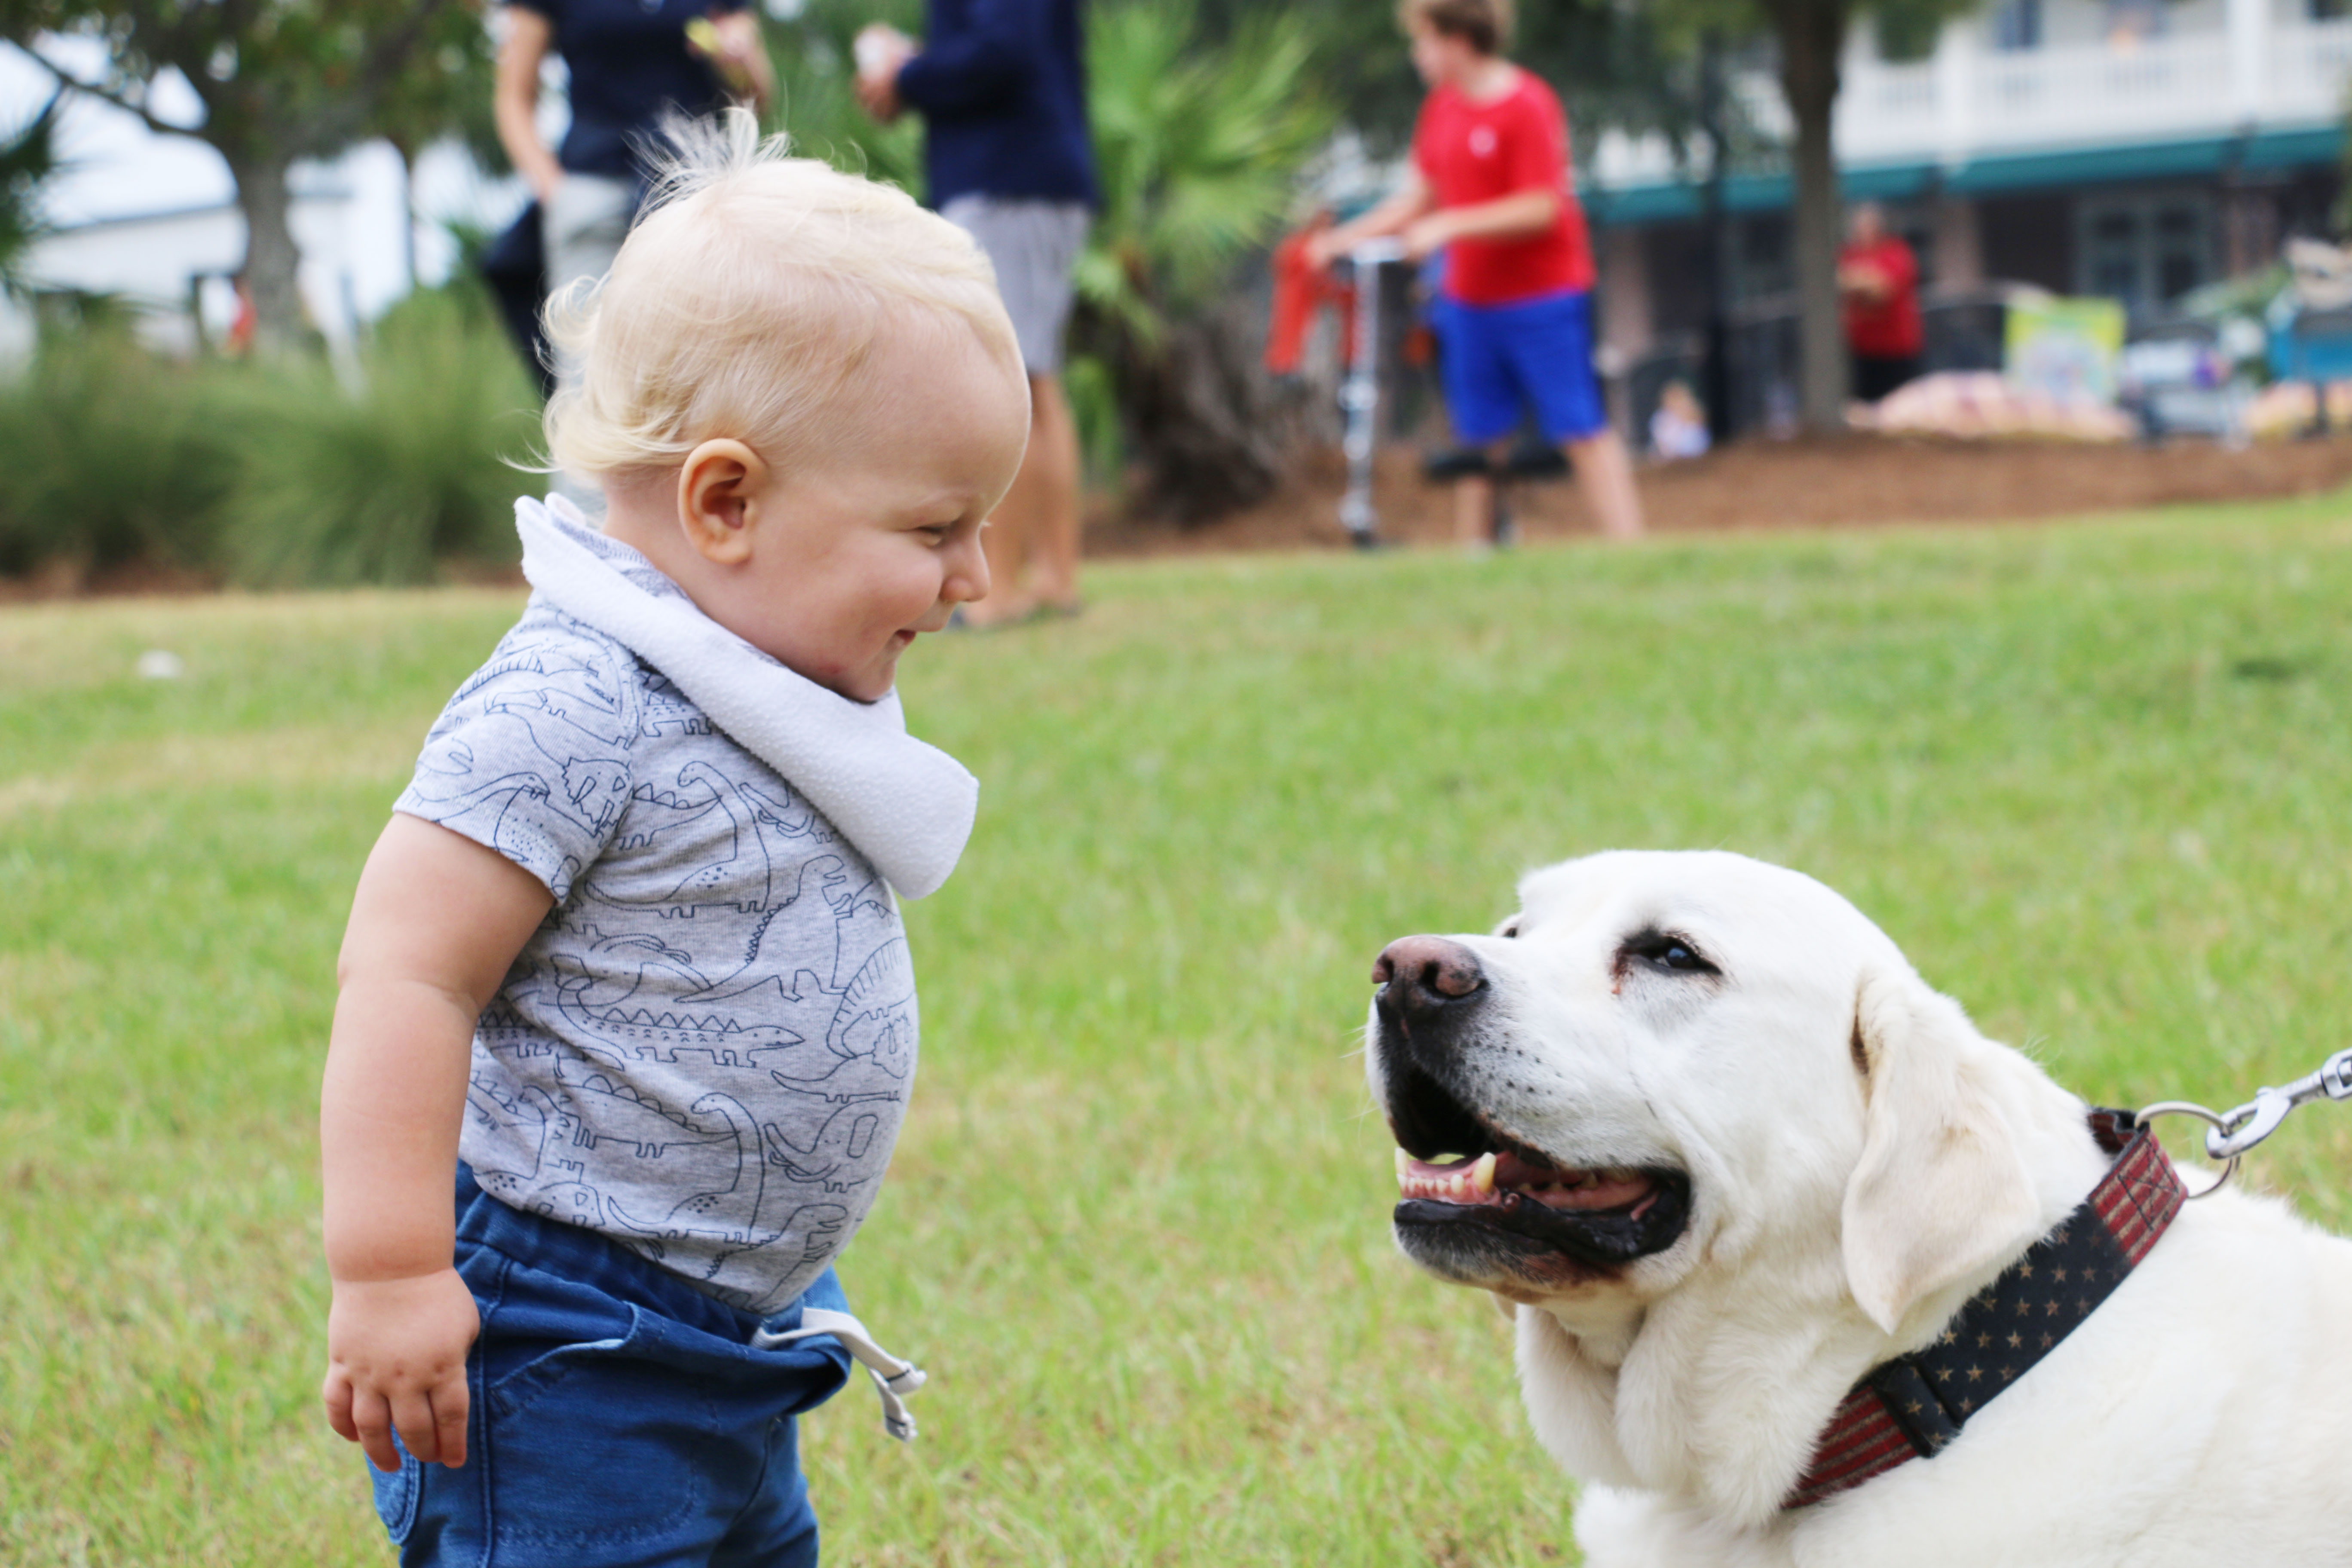 Griff Livsey, 1, of Mount Pleasant, enjoys playing with Splash, a yellow lab that has been a Daniel Island resident for 12 years.